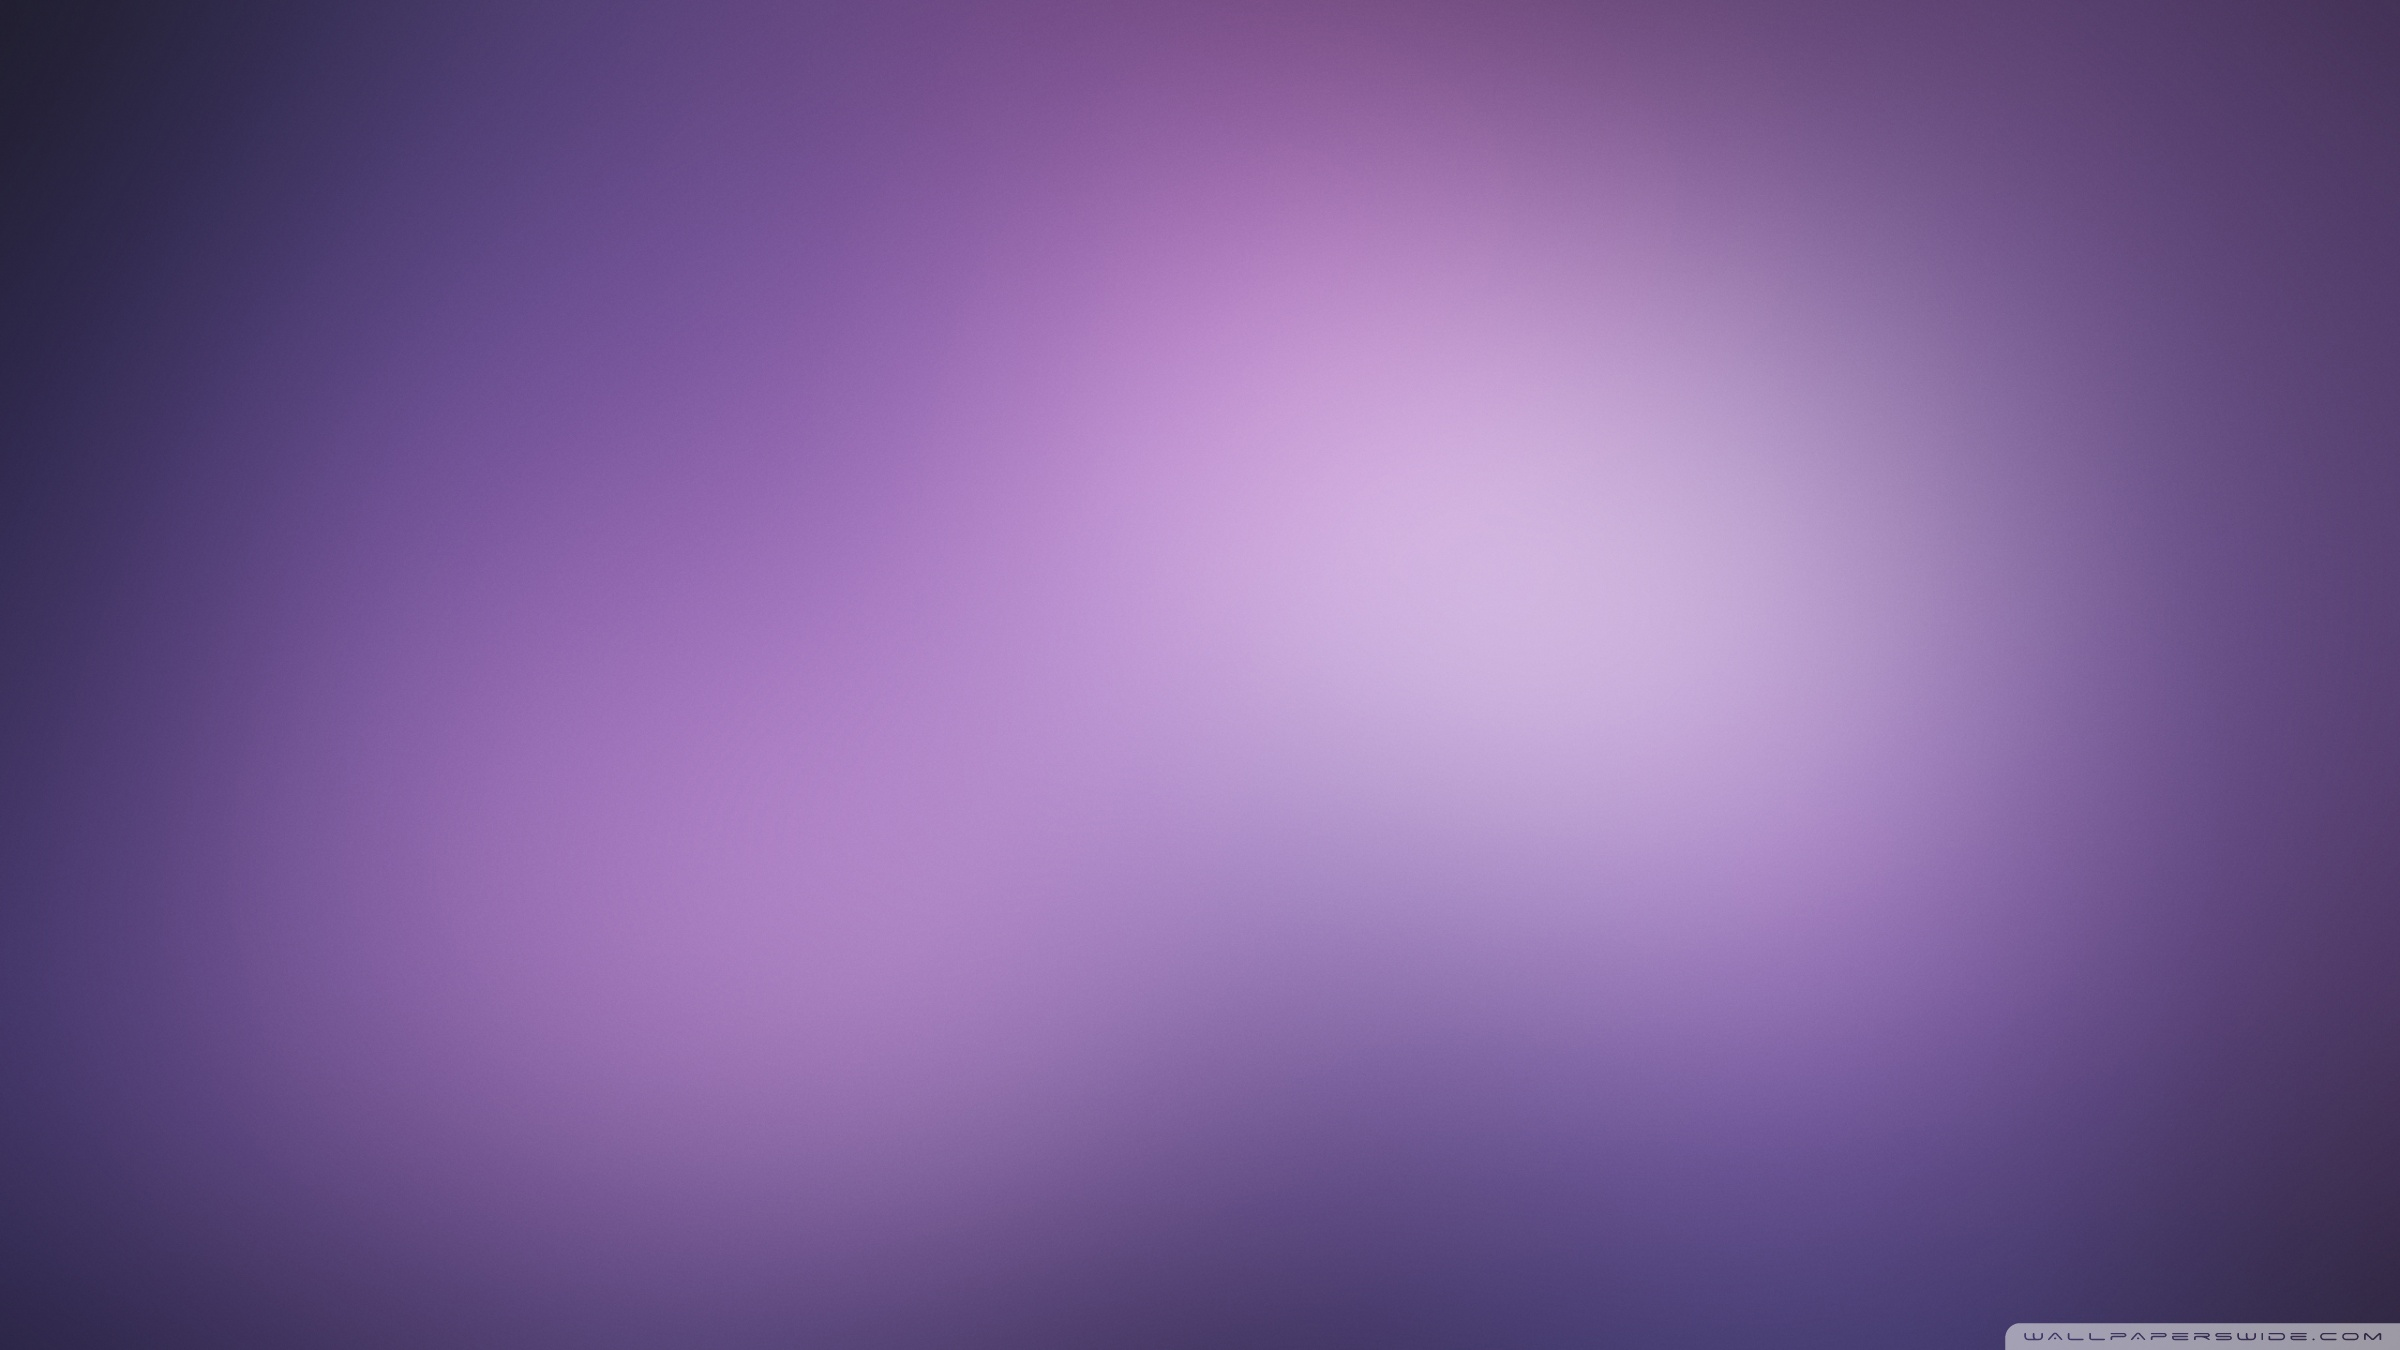 Cute Wallpaper For Ipad Mini 2 Purple Blurry Background 4k Hd Desktop Wallpaper For 4k